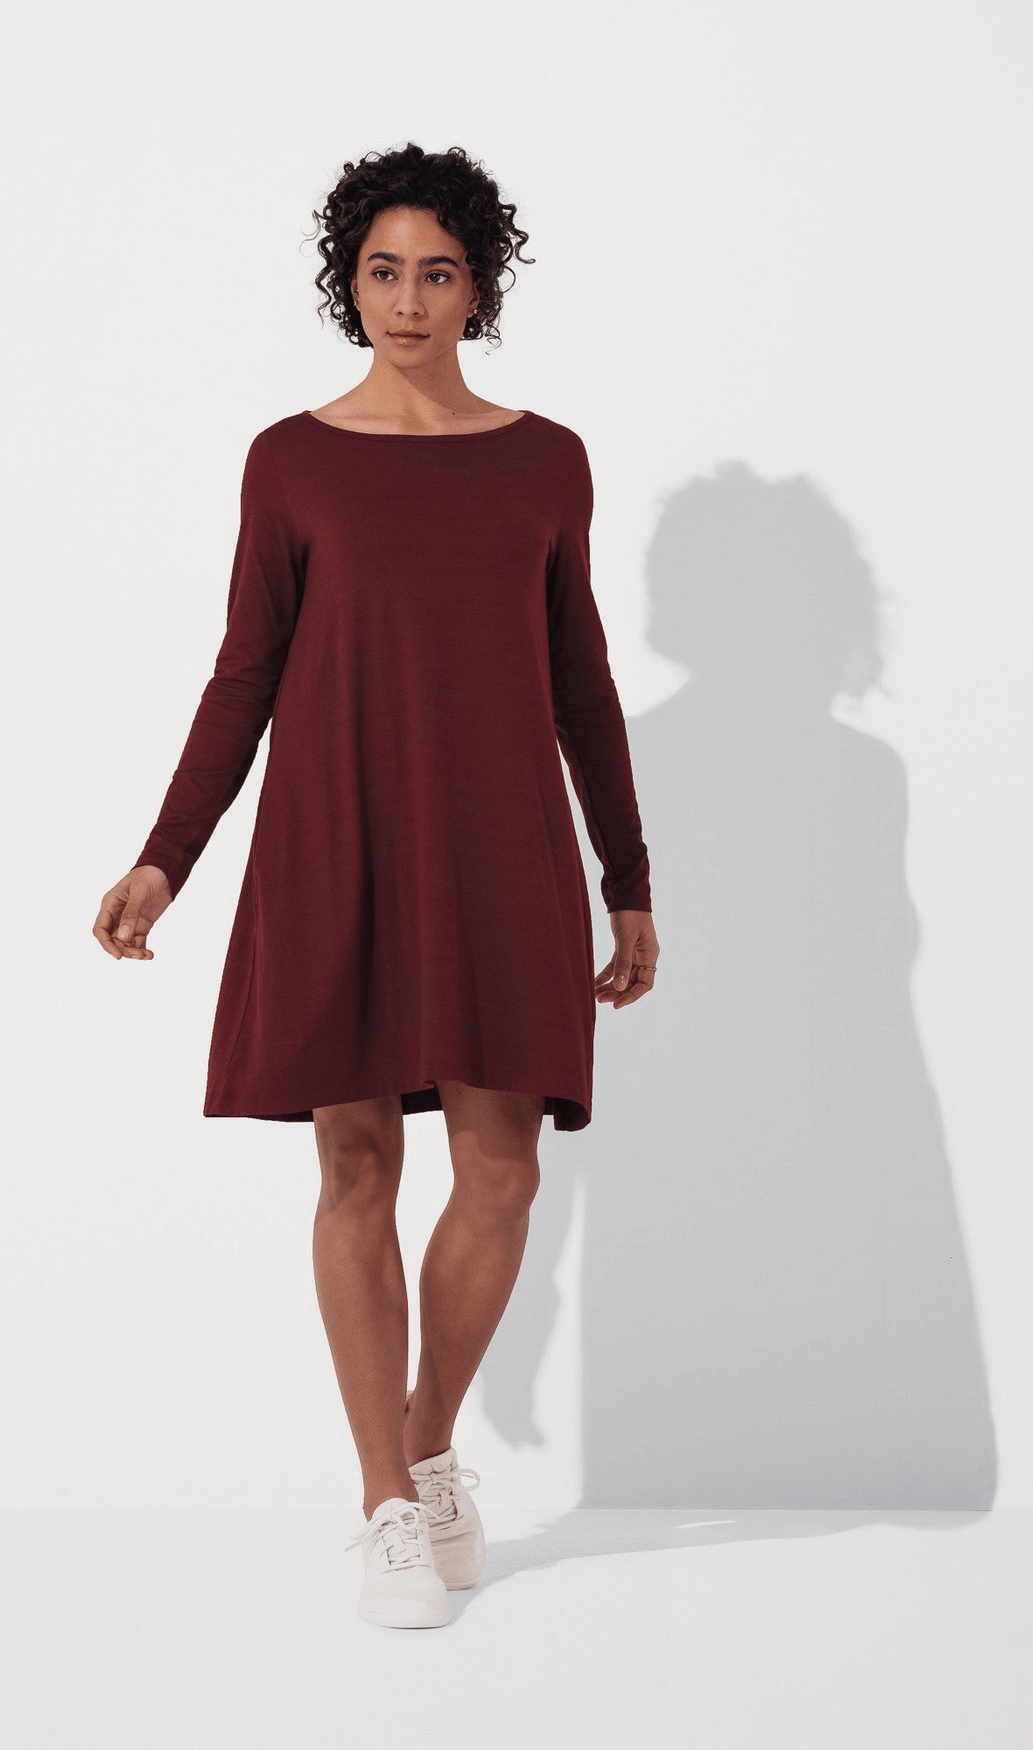 Picture of Rowena Swing Dress from Wooland in Burgundy red